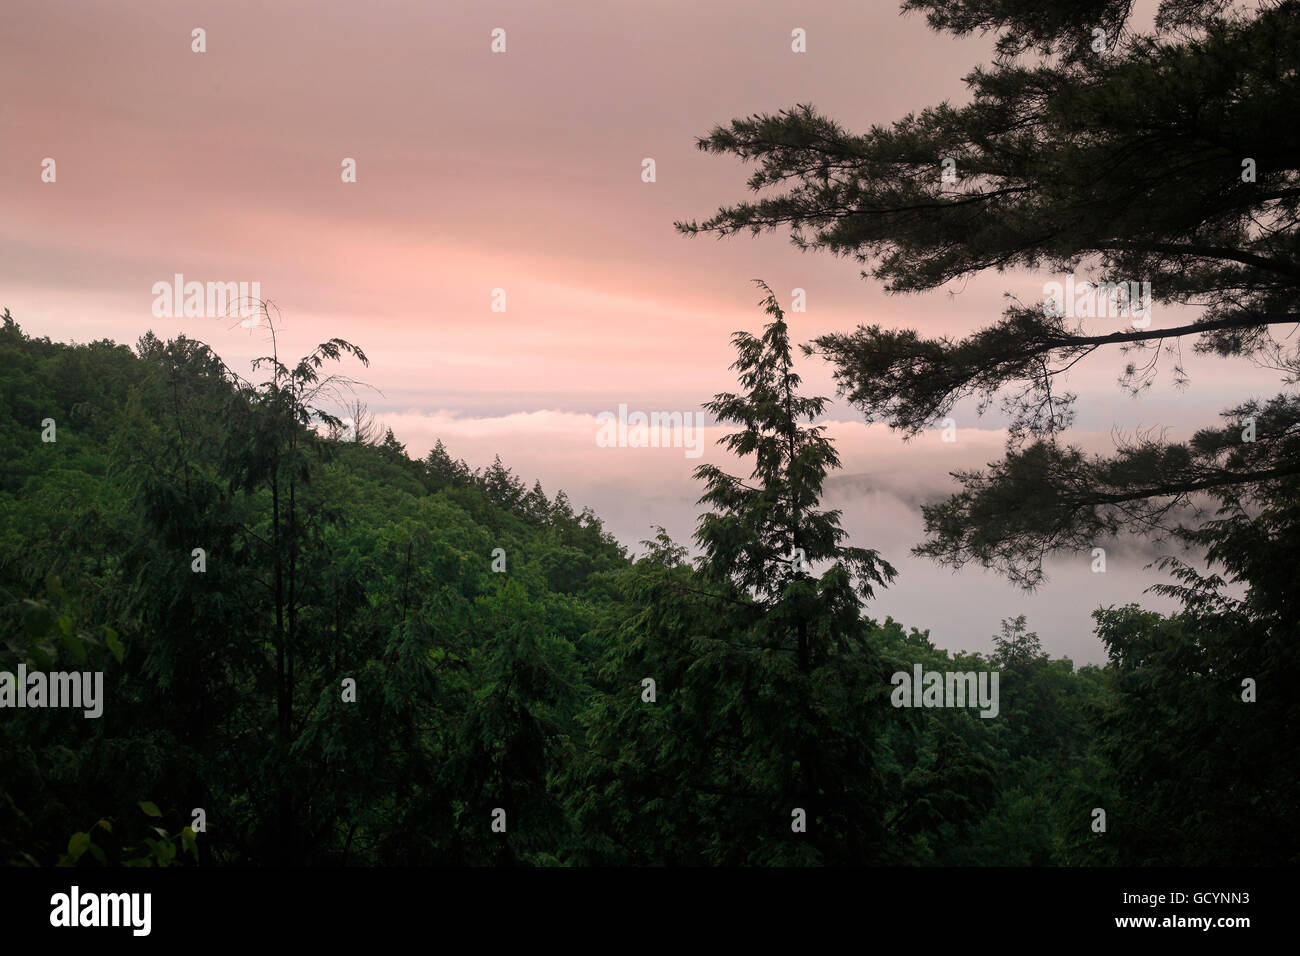 A twilight view from the Appalachian Trail in Massachusetts. - Stock Image